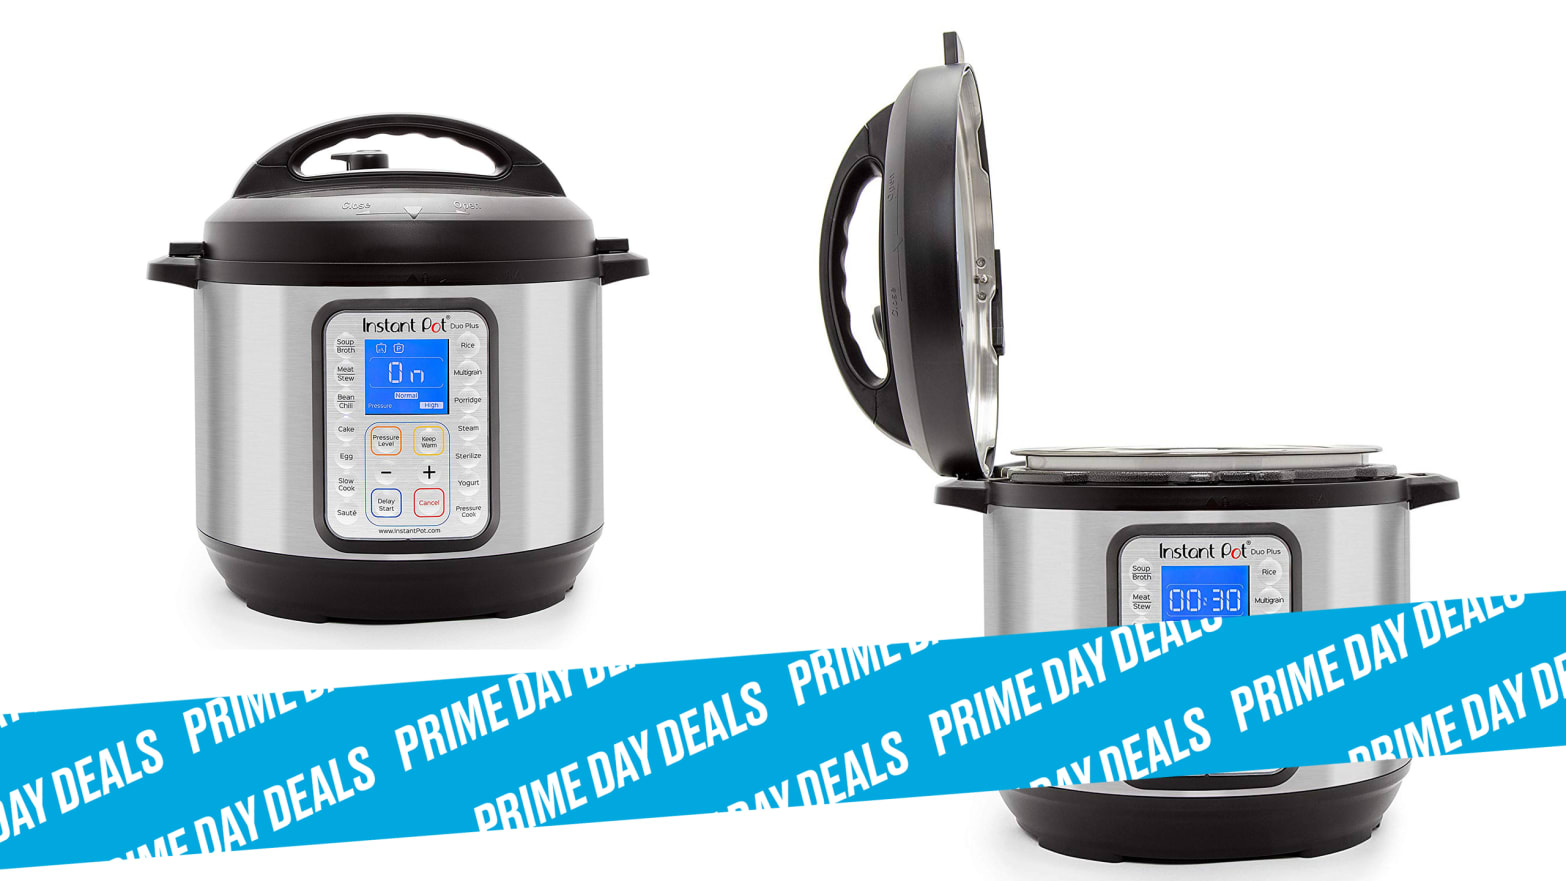 Save More Than 50% on Instant Pot Pressure Cookers, Blenders, and Sous Vides During Prime Day